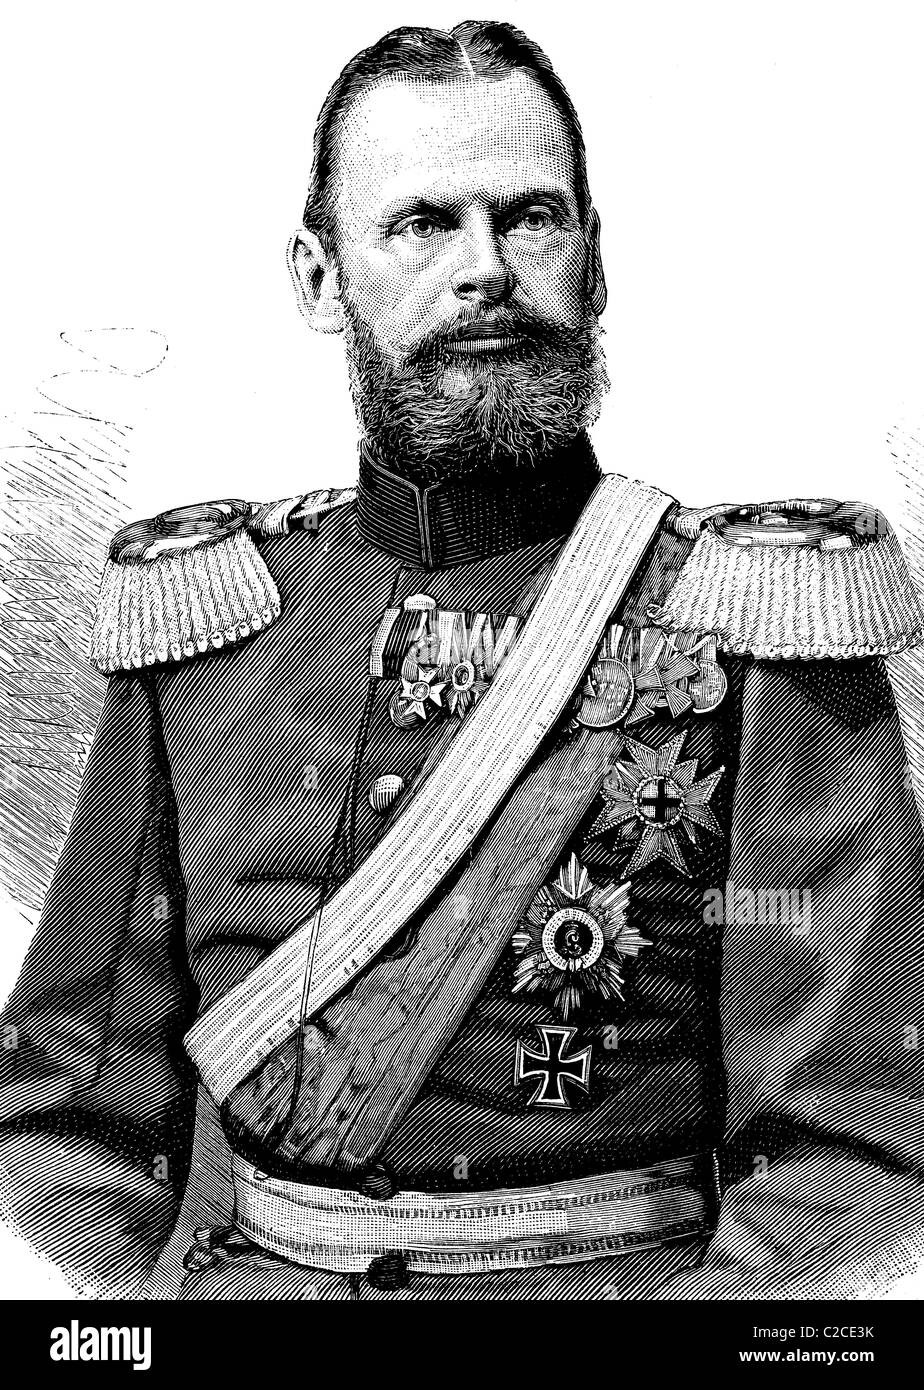 Prince Leopold of Bavaria, 1846 - 1930, German Field Marshal, historical illustration circa 1893 - Stock Image